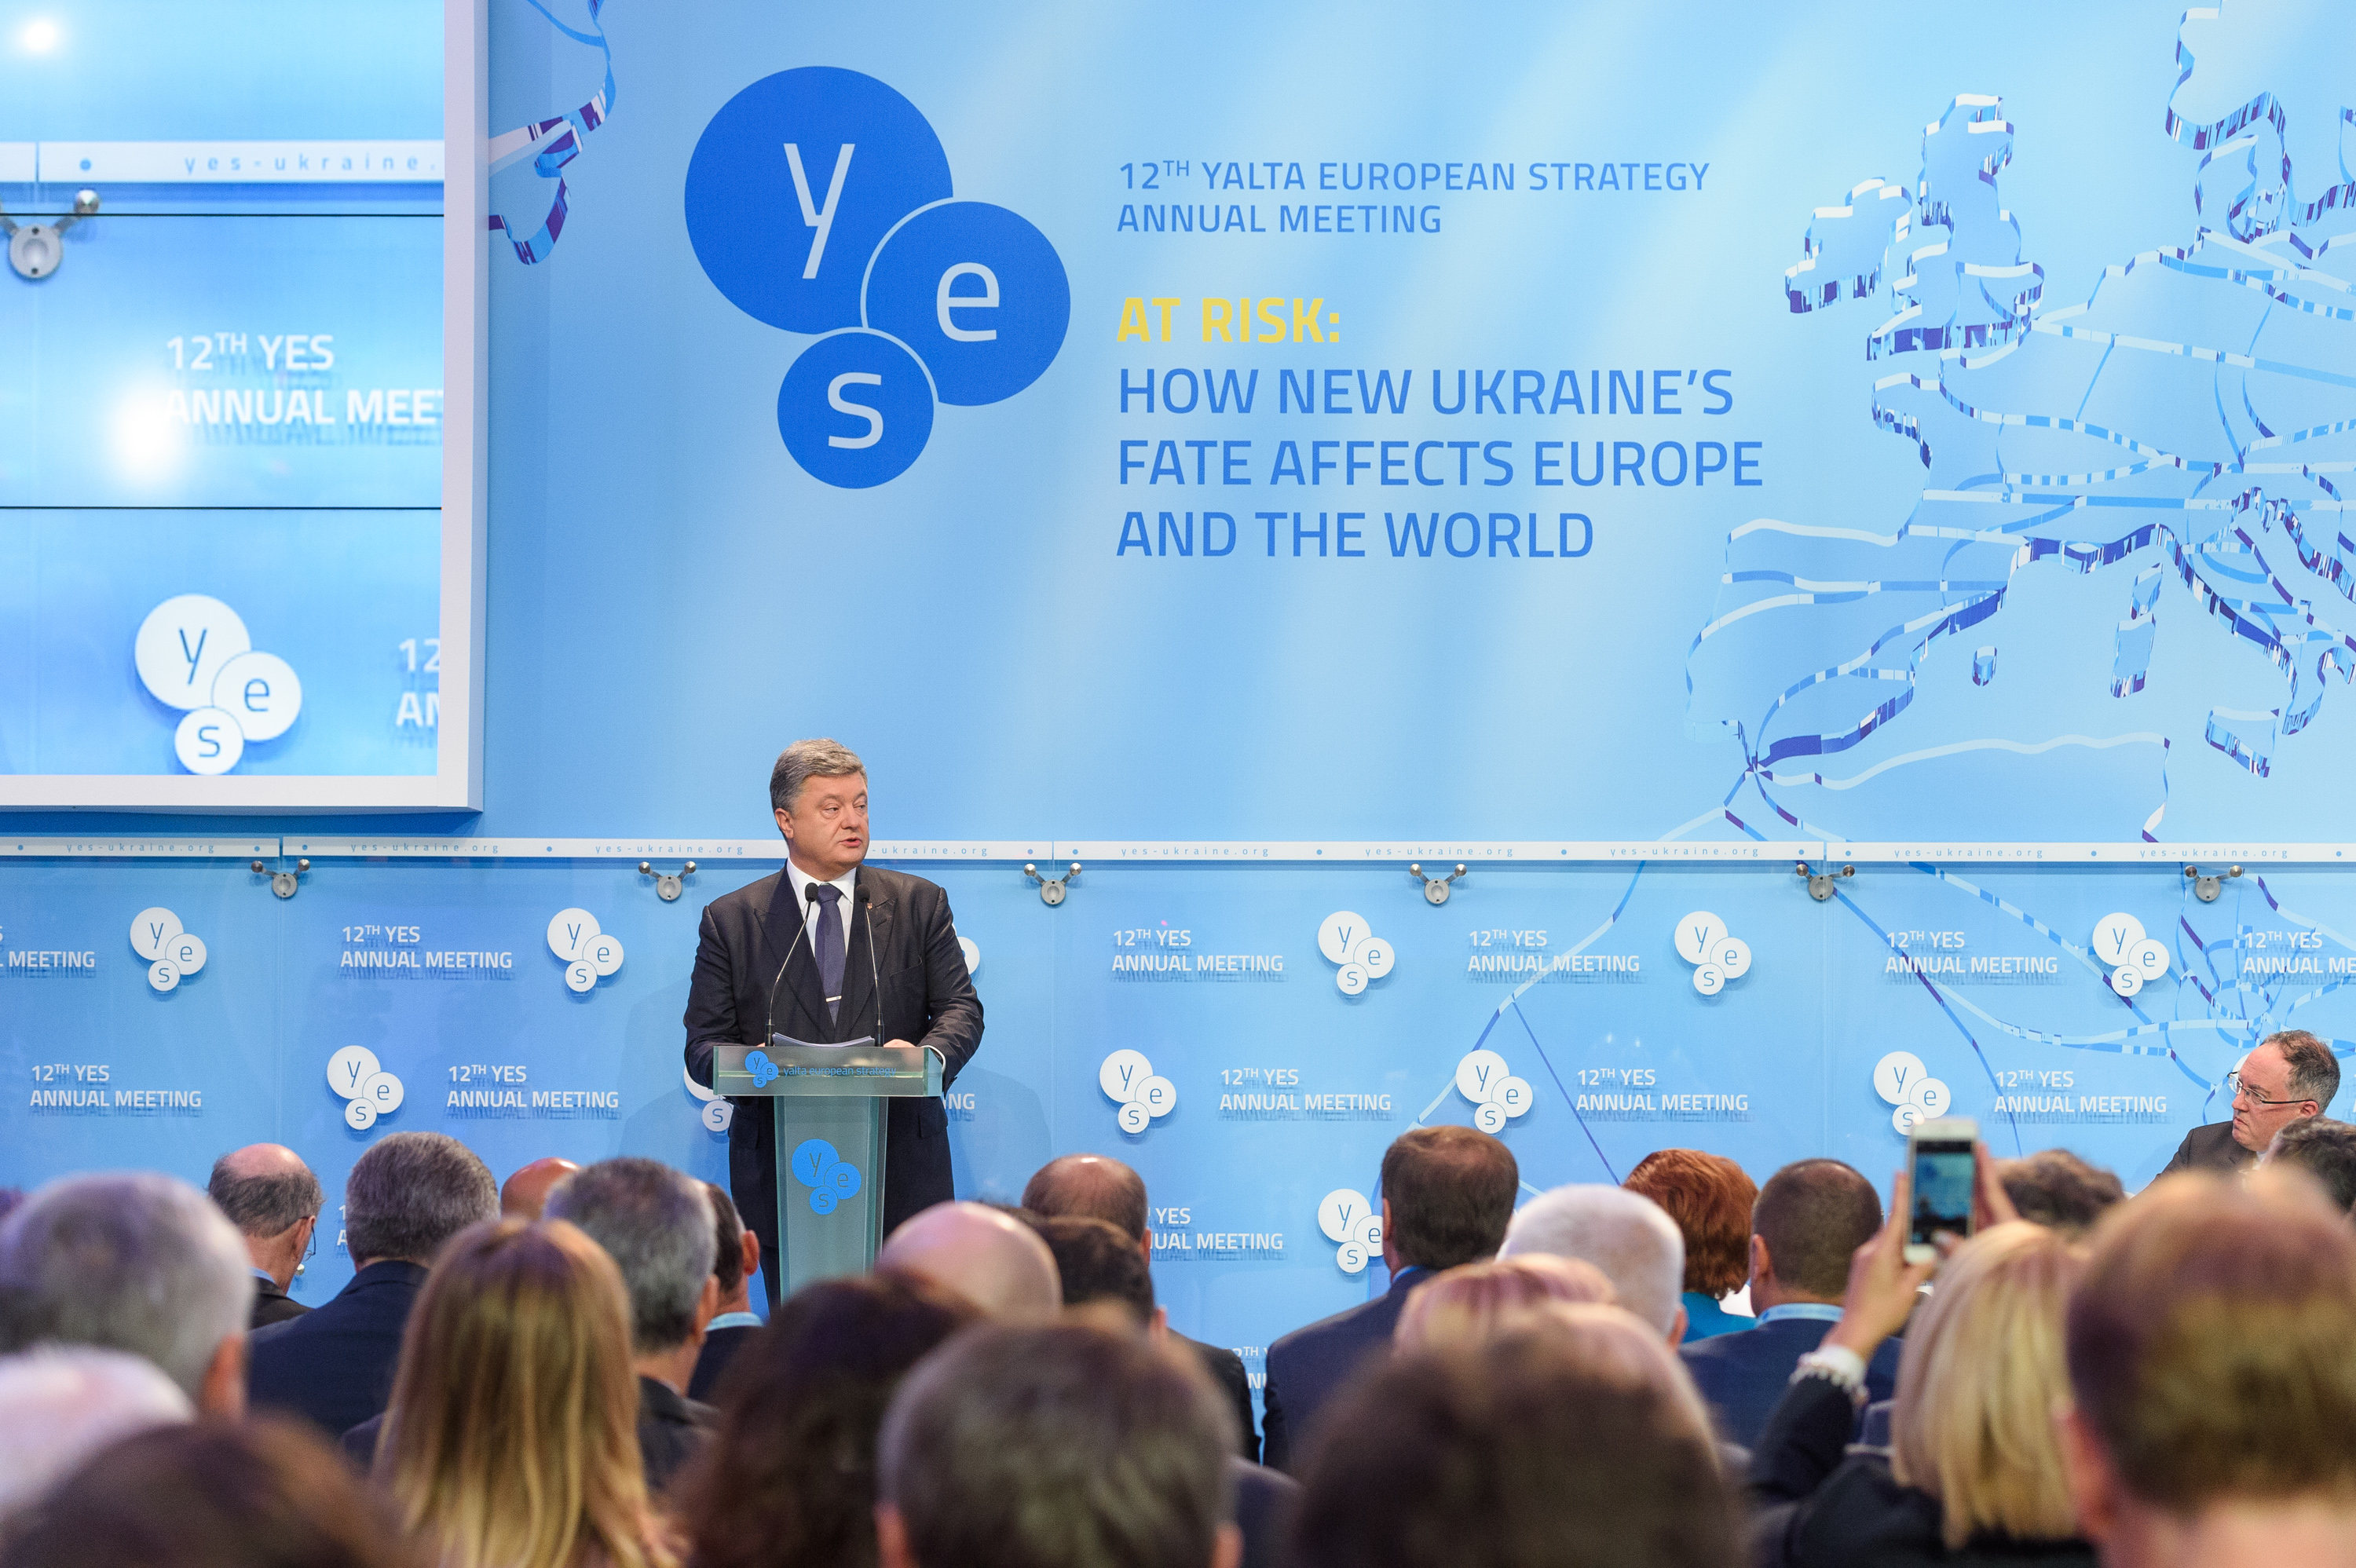 12th Yalta European Strategy Annual Meeting